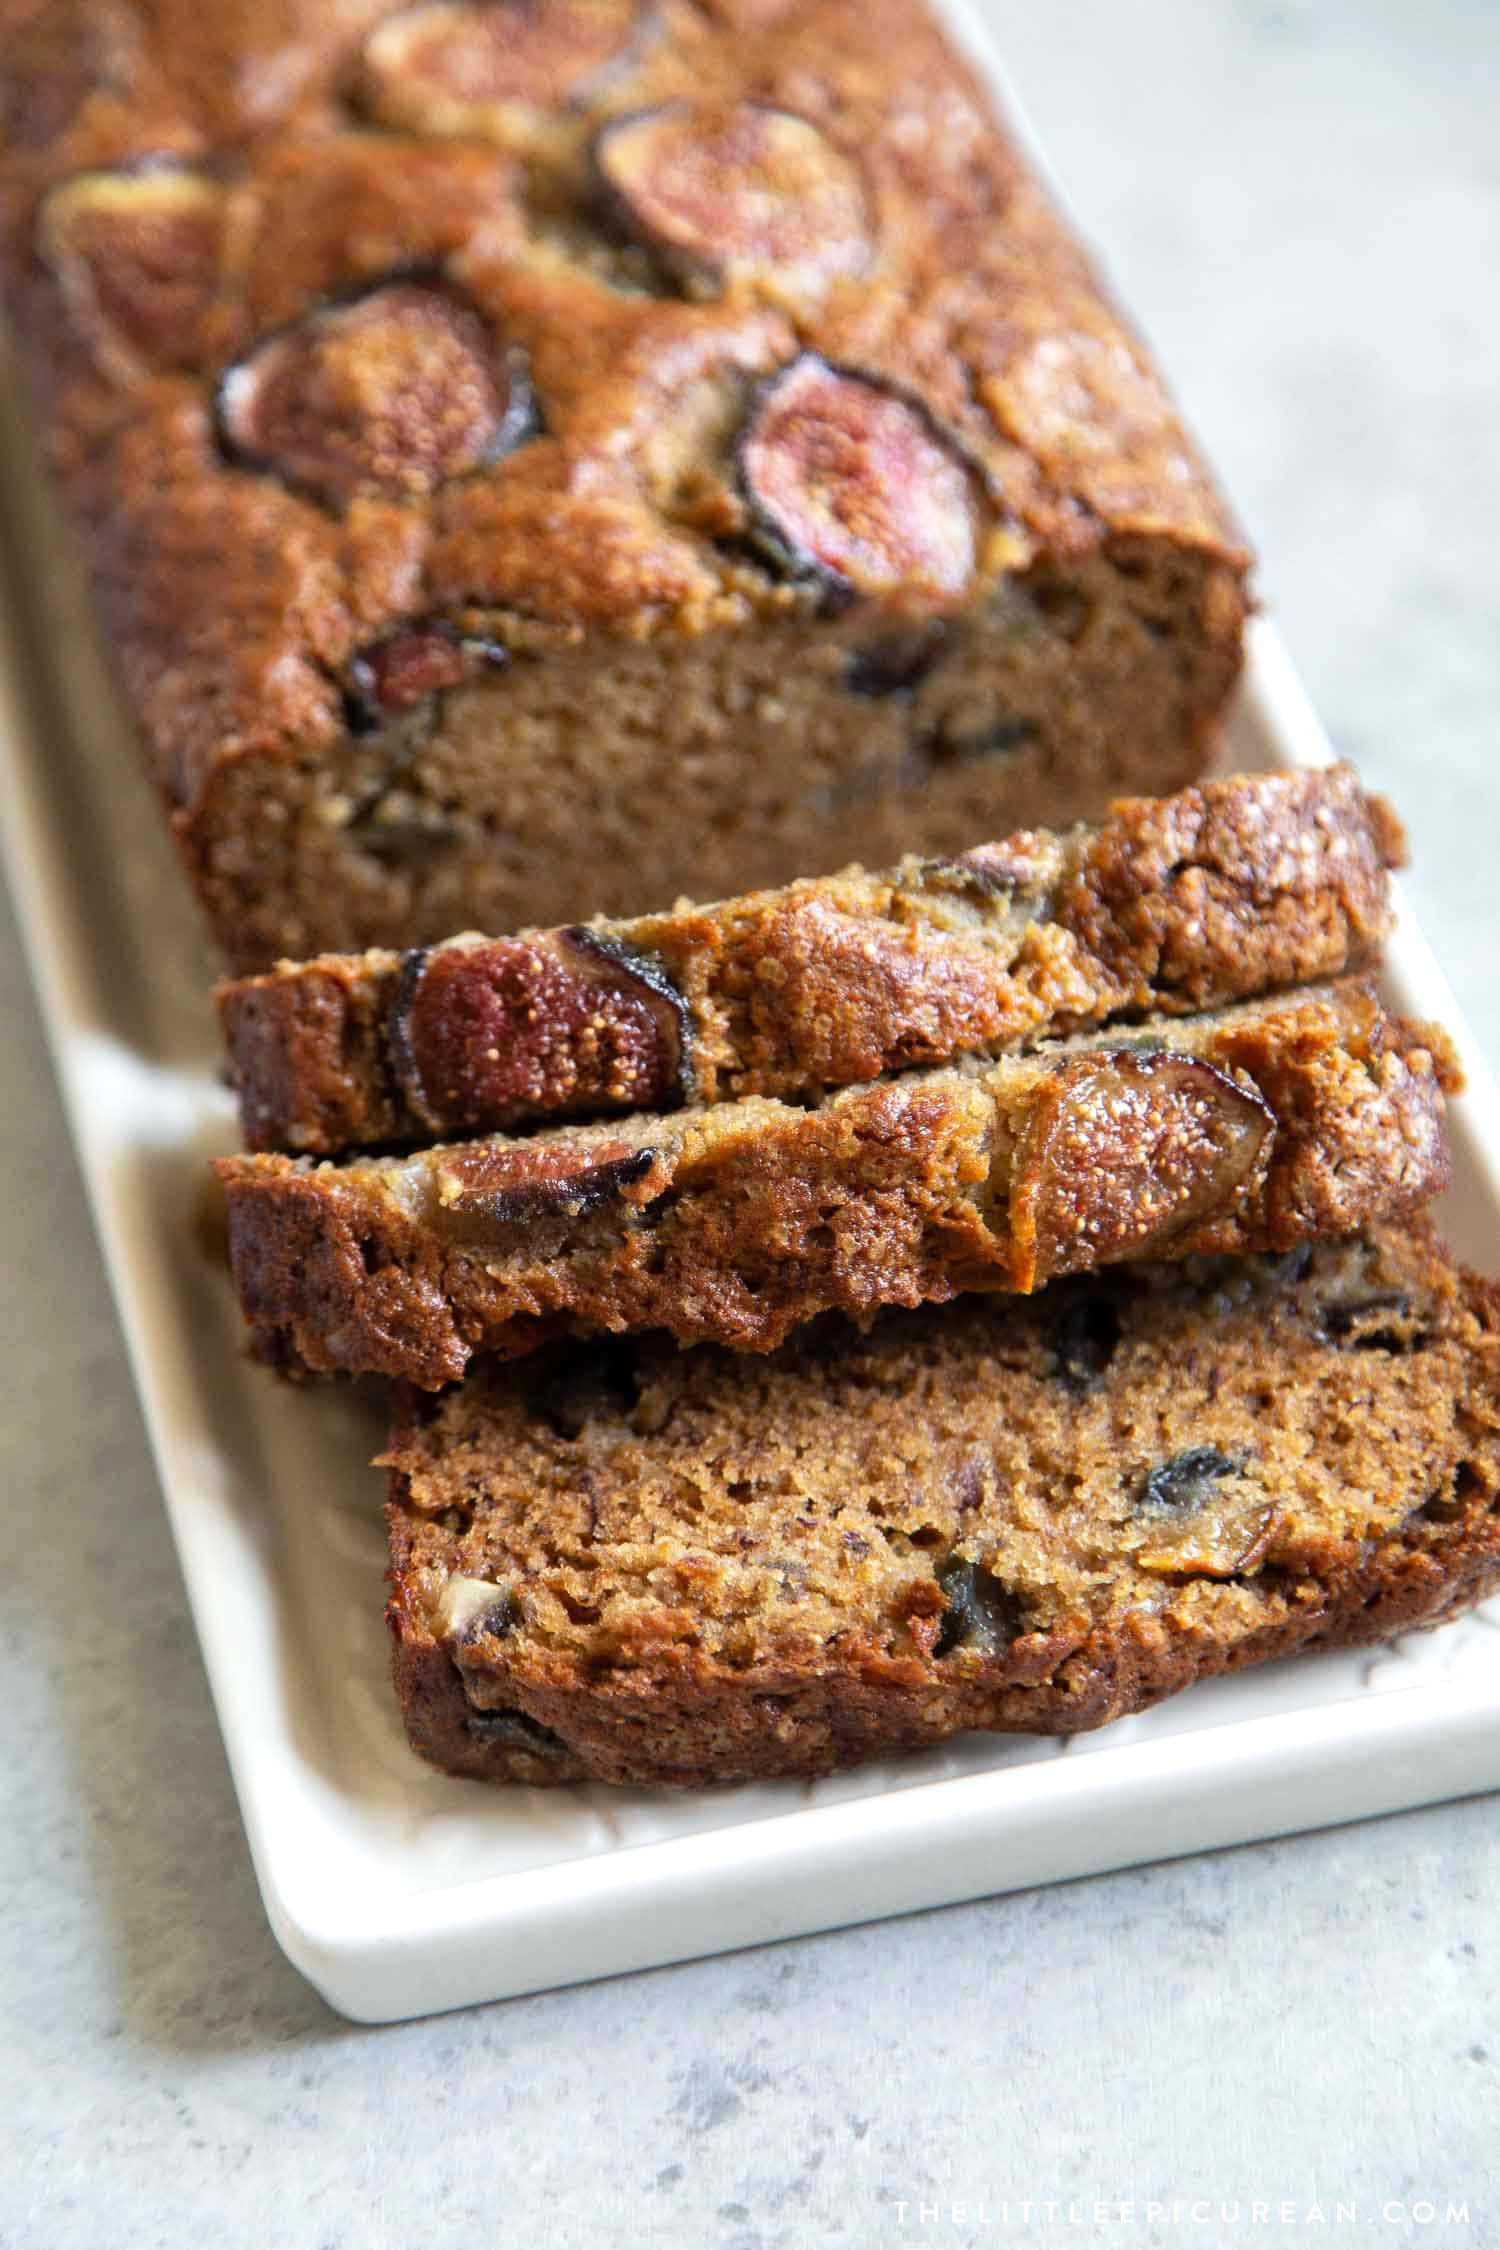 Brown sugar banana bread mixed with chopped figs in the batter and sliced figs on top to garnish.